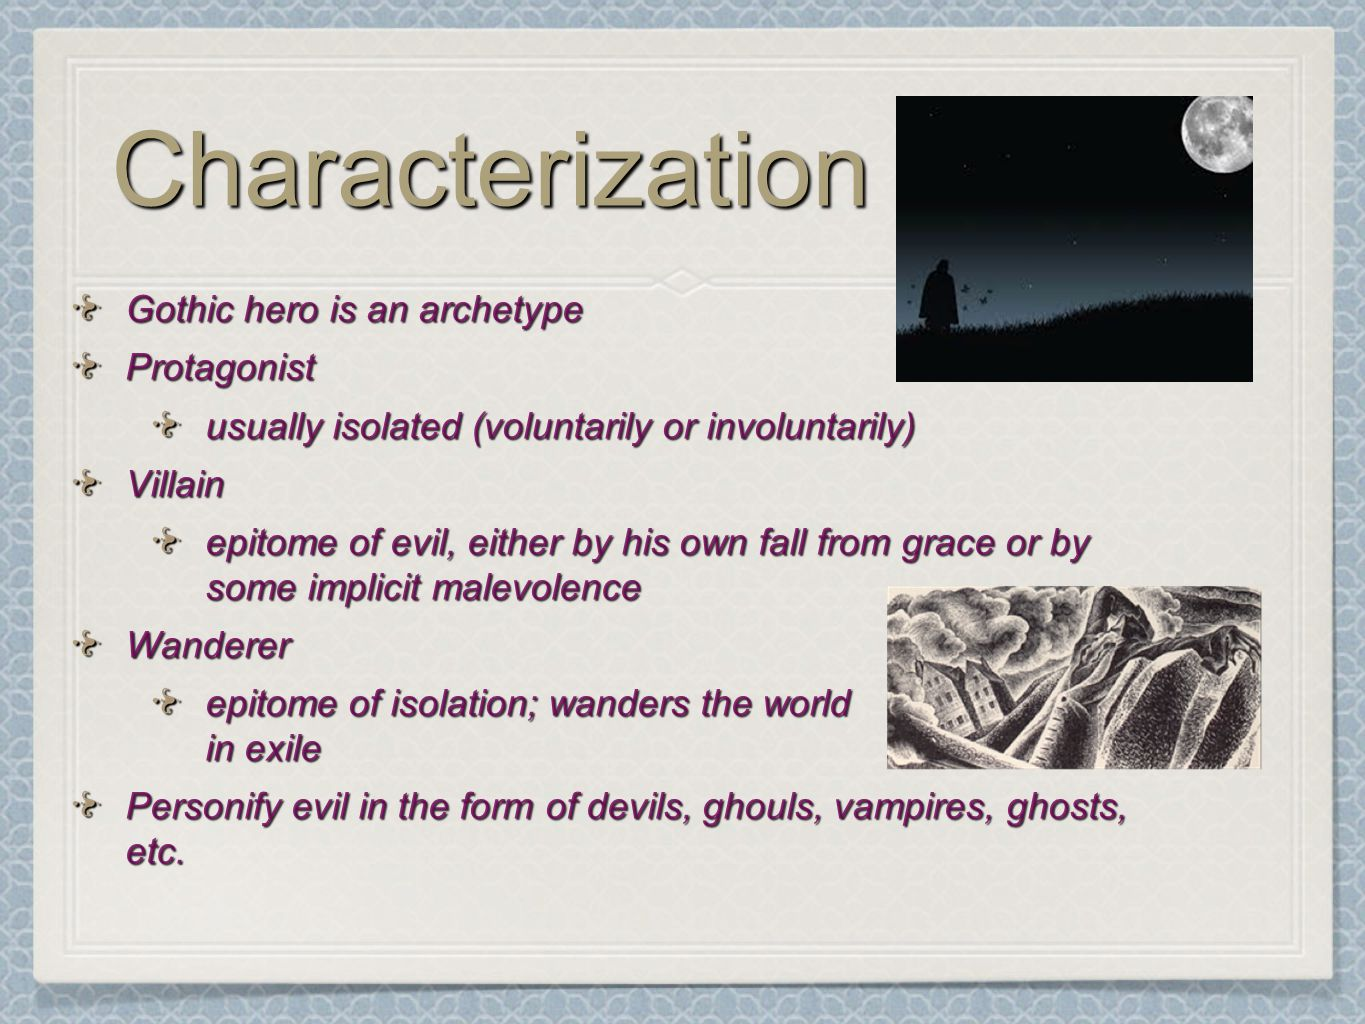 CharacterizationCharacterization Gothic hero is an archetype Protagonist usually isolated (voluntarily or involuntarily) Villain epitome of evil, either by his own fall from grace or by some implicit malevolence Wanderer epitome of isolation; wanders the world in exile Personify evil in the form of devils, ghouls, vampires, ghosts, etc.